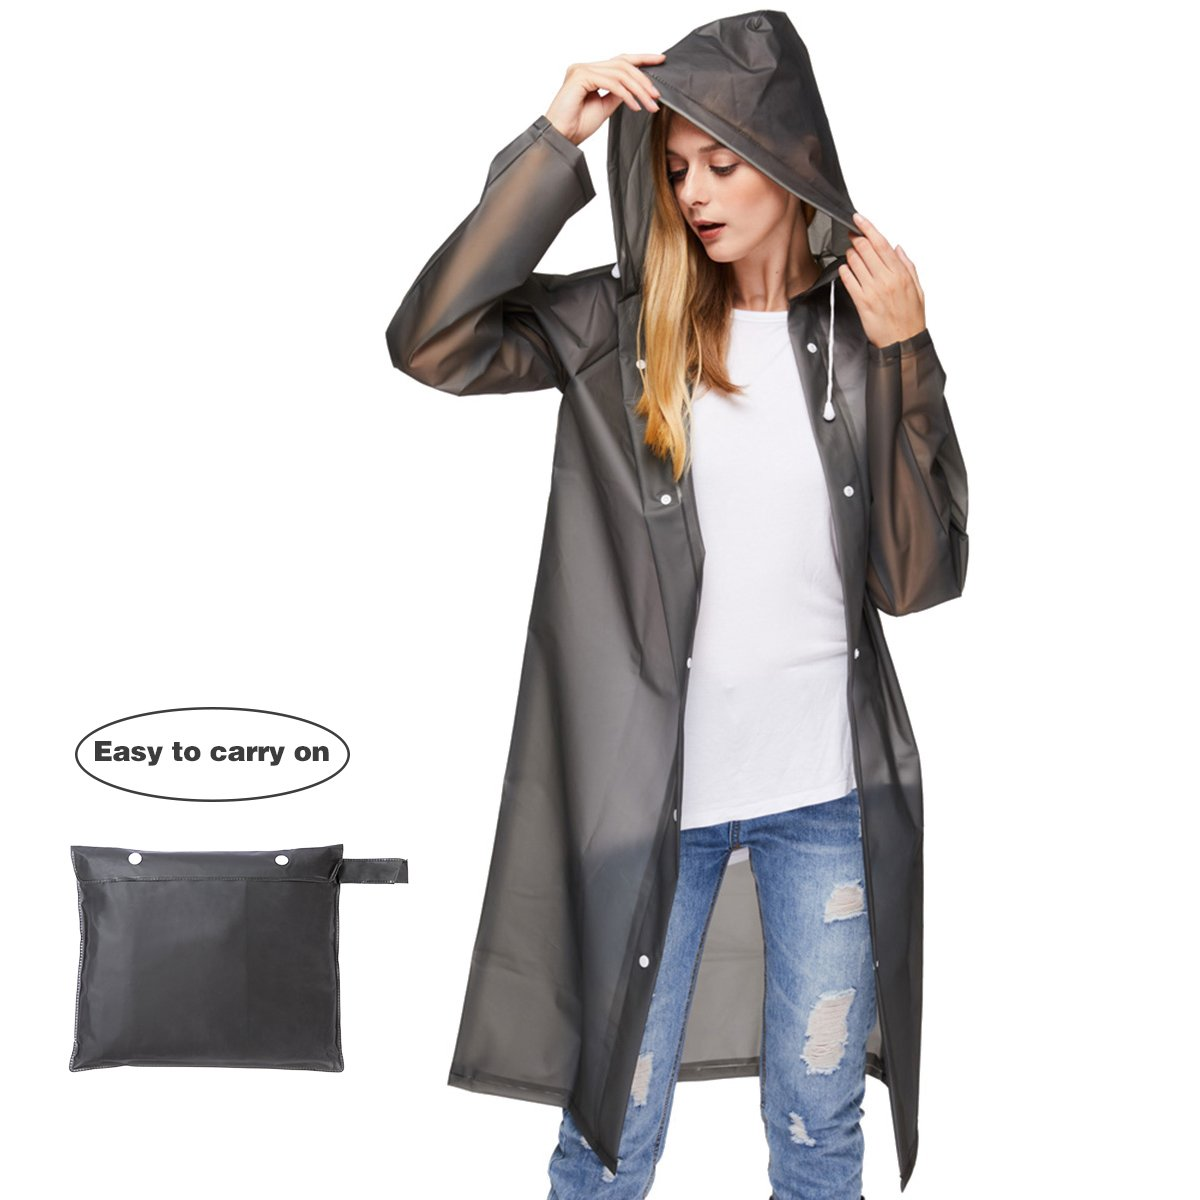 UNIQUEBELLA Clear EVA Raincoat Women Waterproof Rain Ponchos Long Rainwear Packable Lightweight Hooded Raincoat Travel Fishing Daily Use - Black (M)